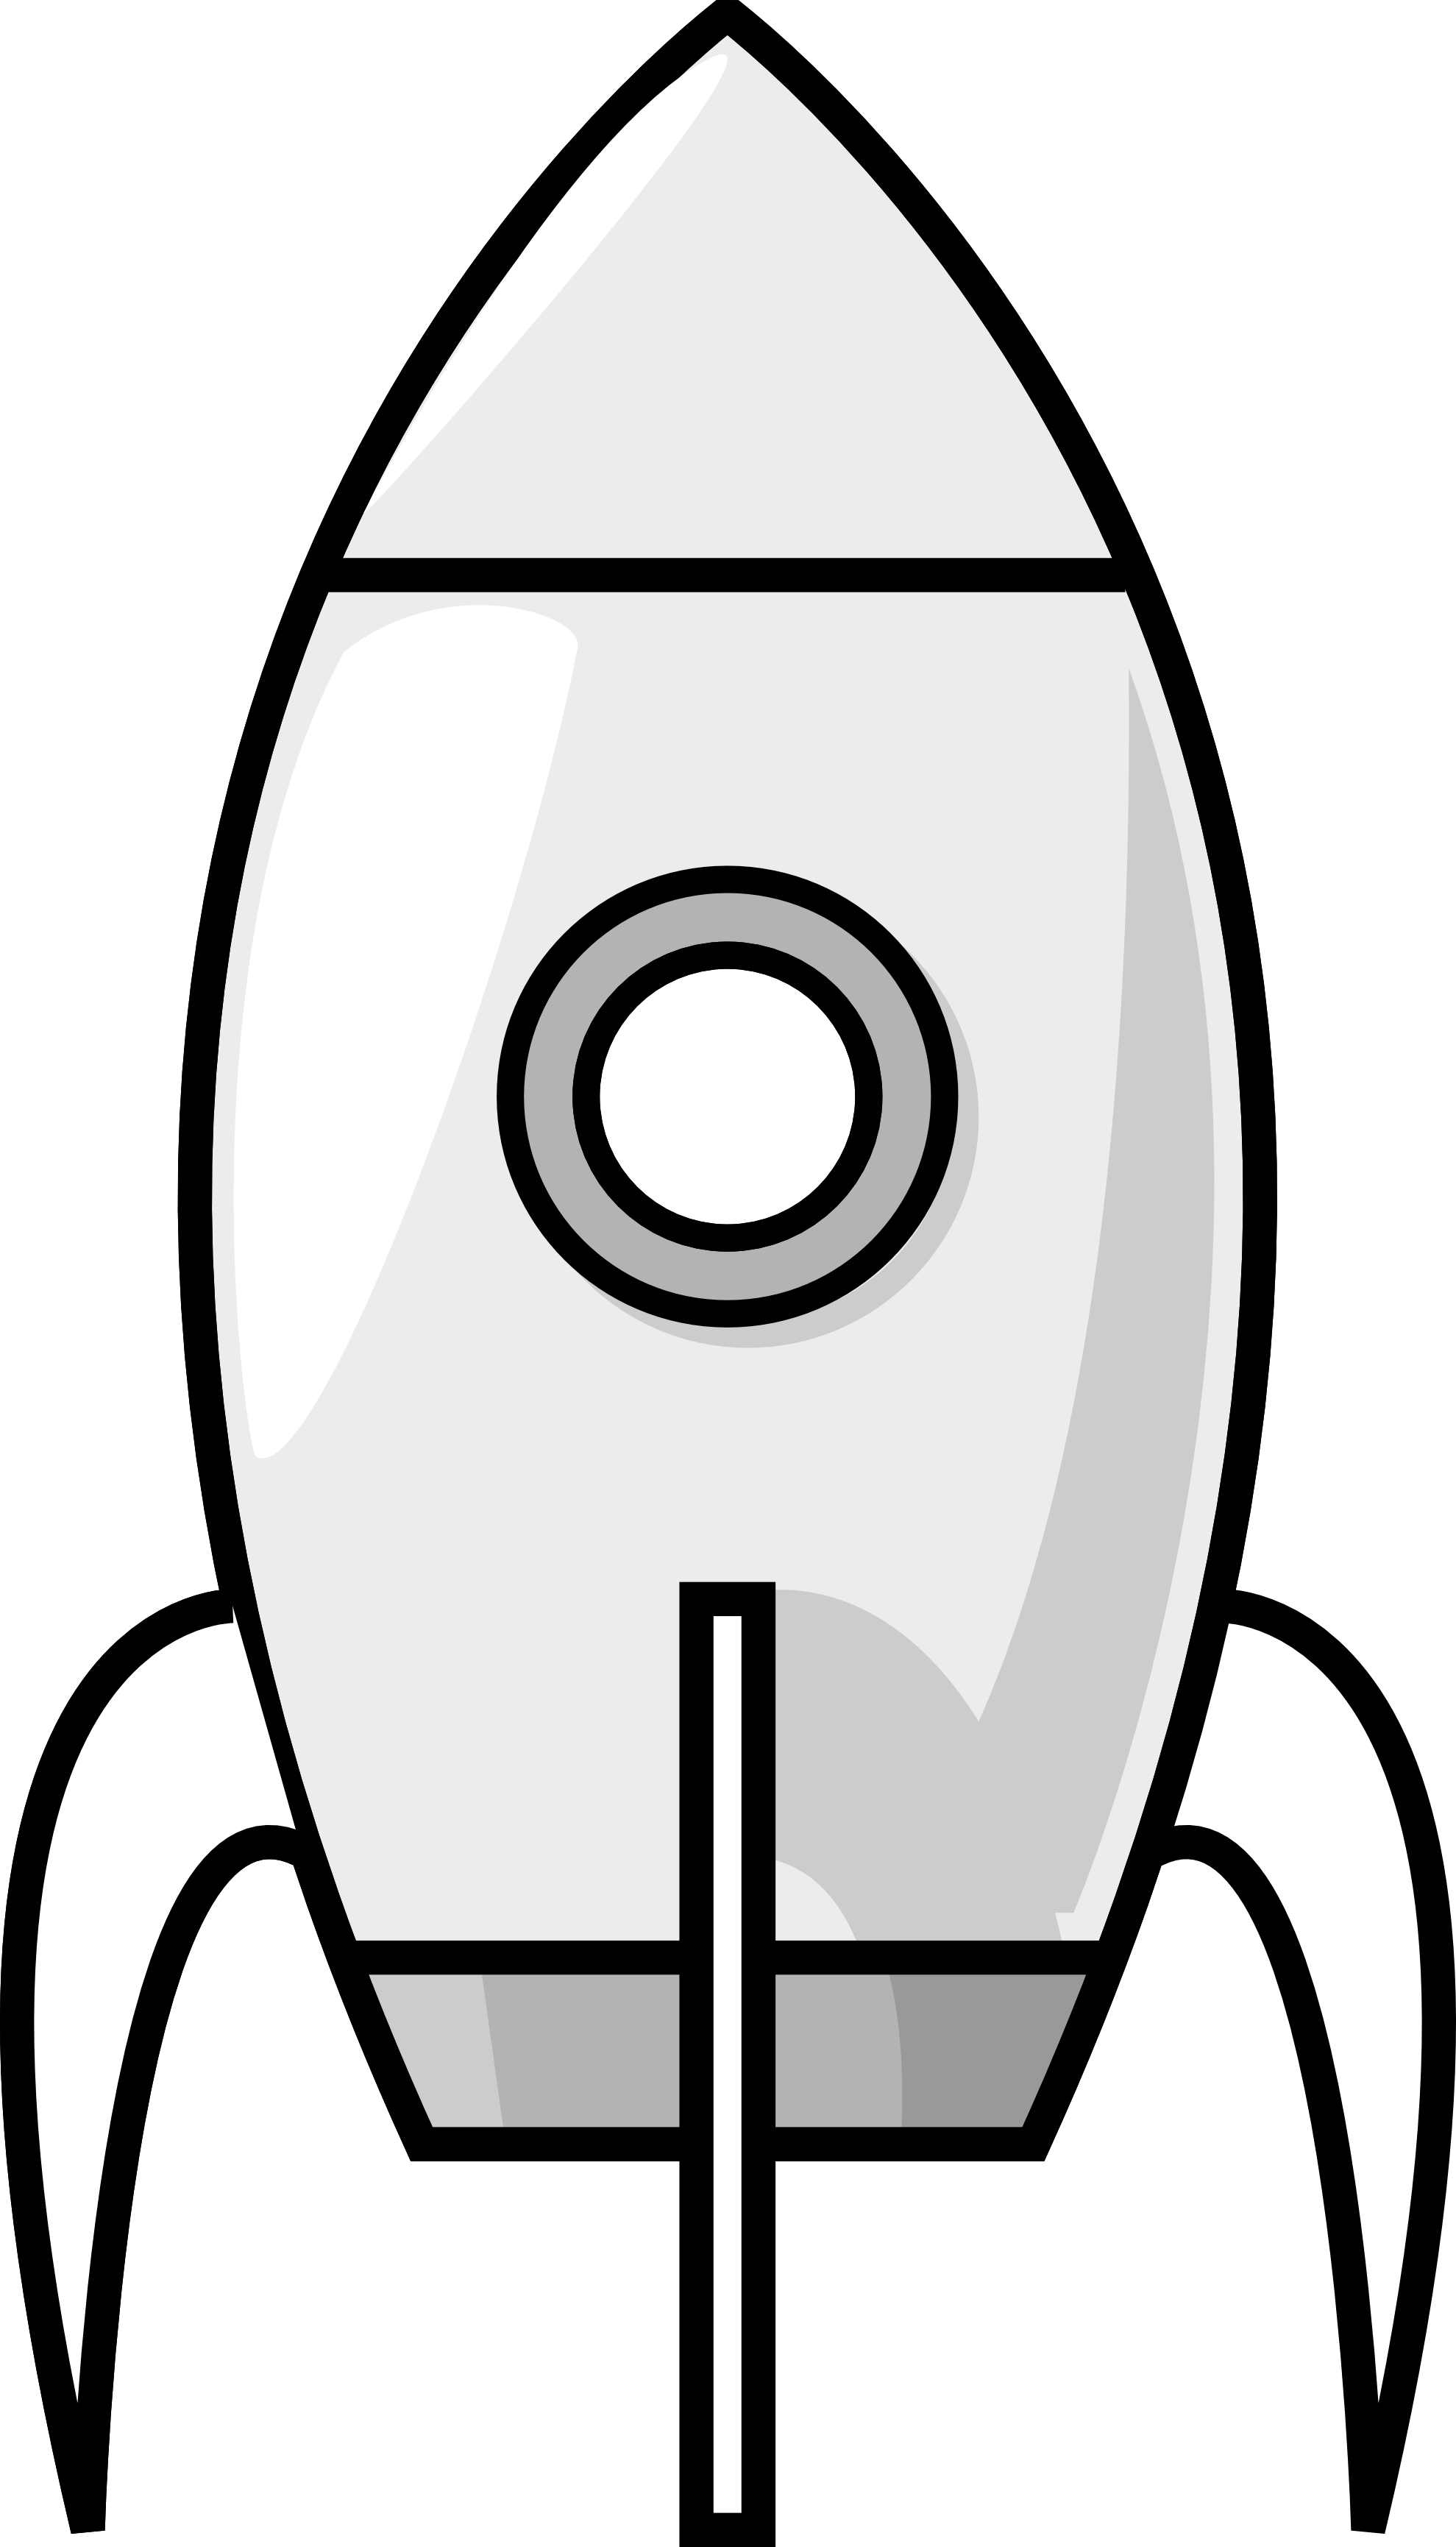 clip art Spaceship png images transparent. Clipart black and white moon